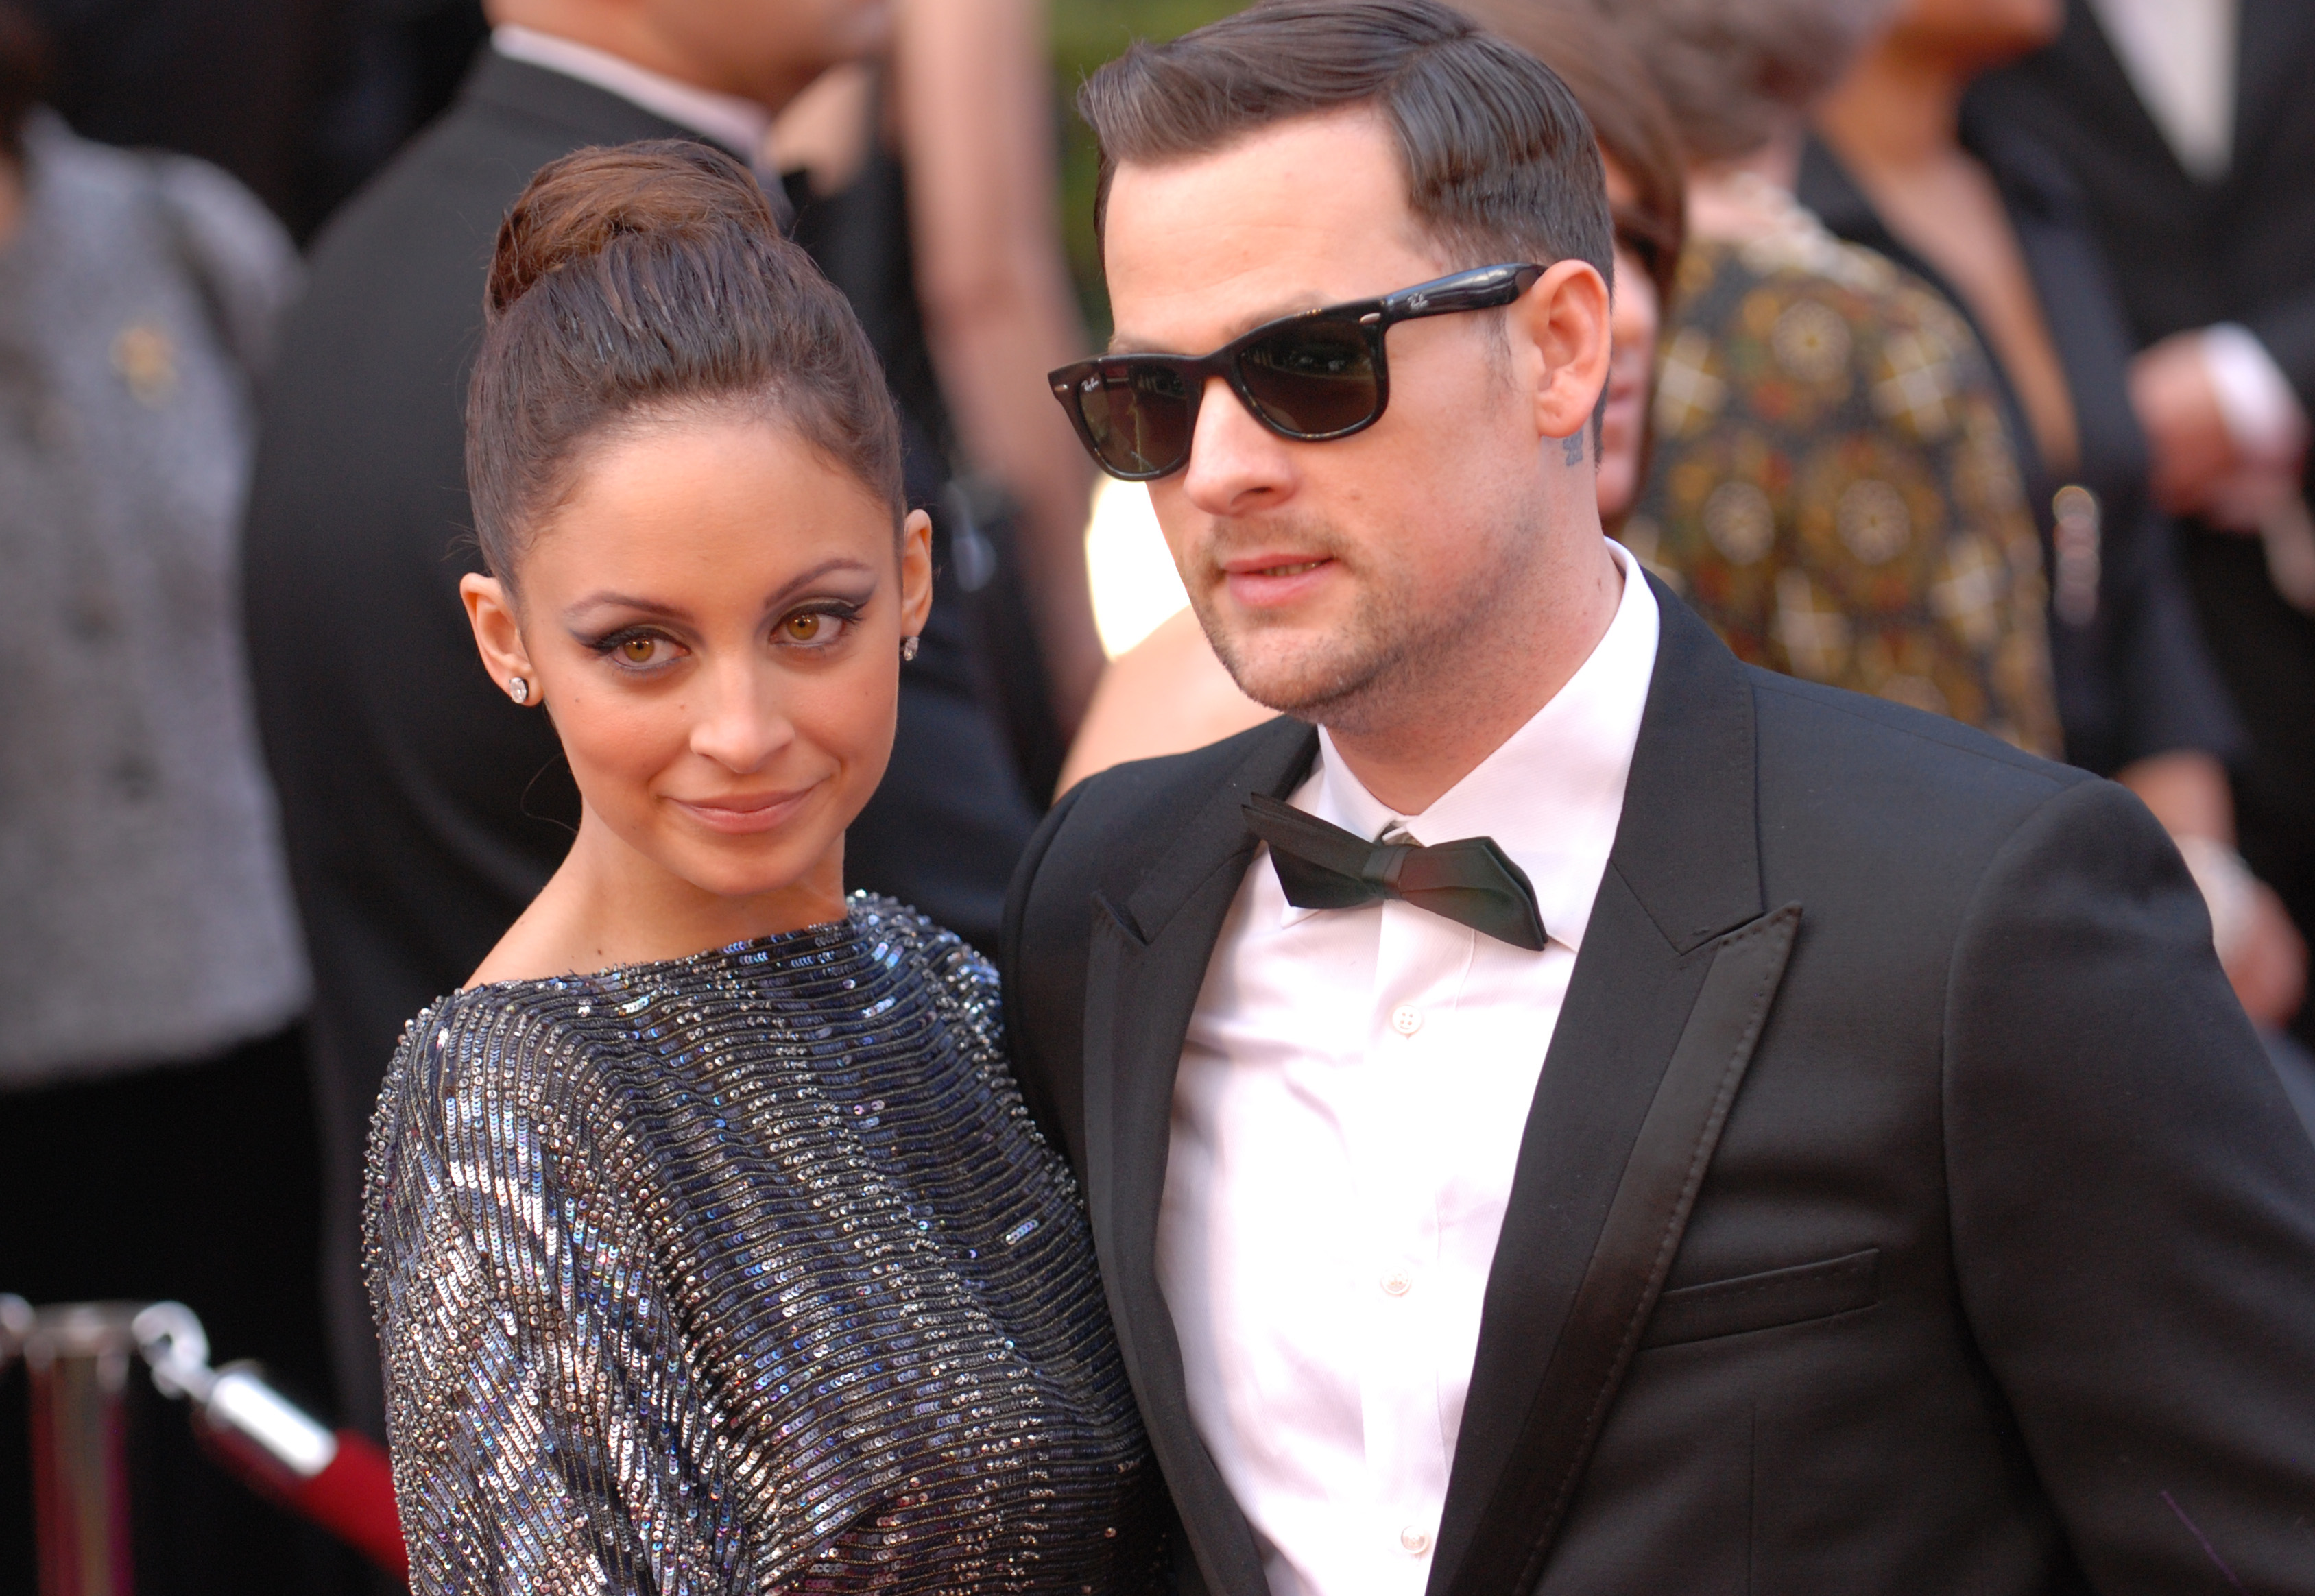 Celebrity couple Nicole Richie and Joel Madden have listed their .4-acre Laurel Canyon property for $3.495 million